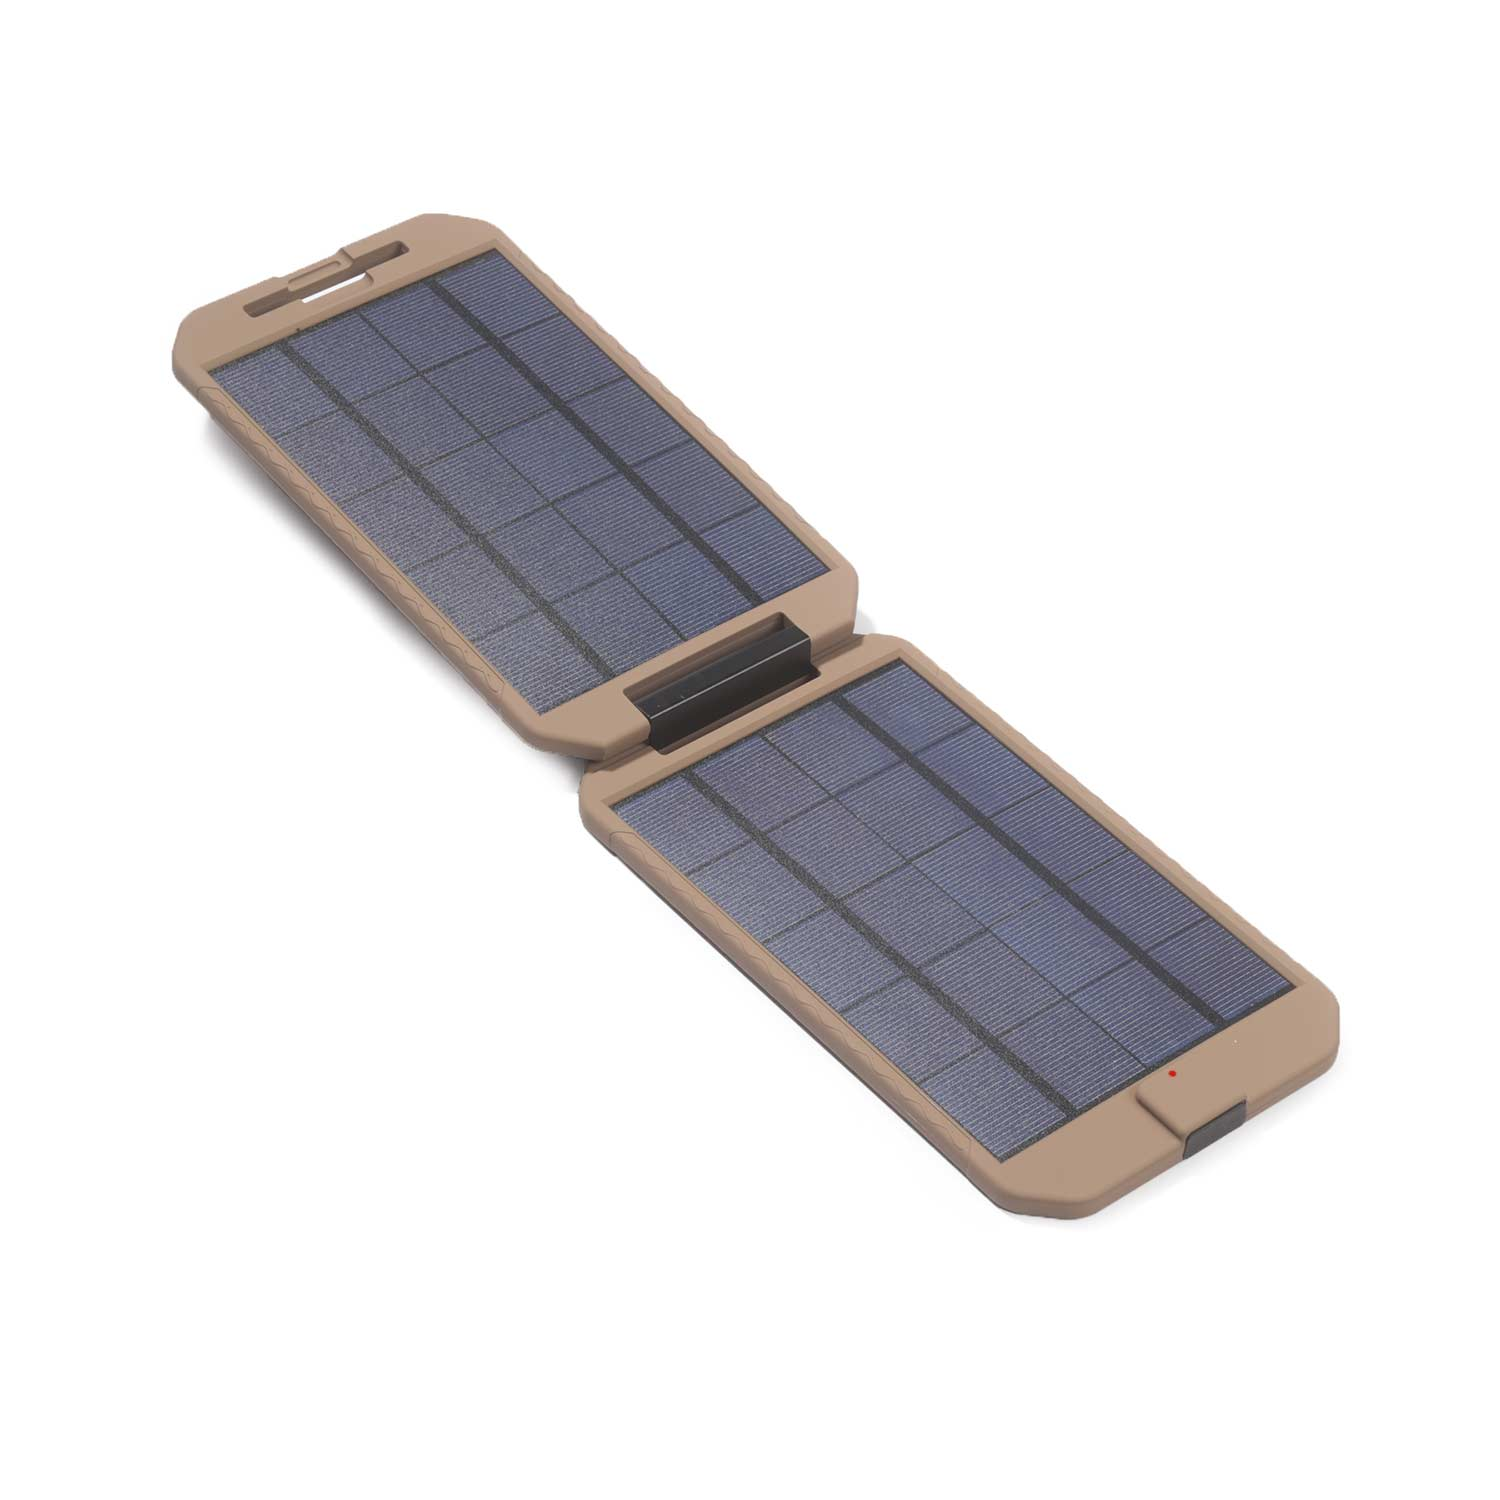 Powertraveller Tactical Extreme Solar Powered Charger